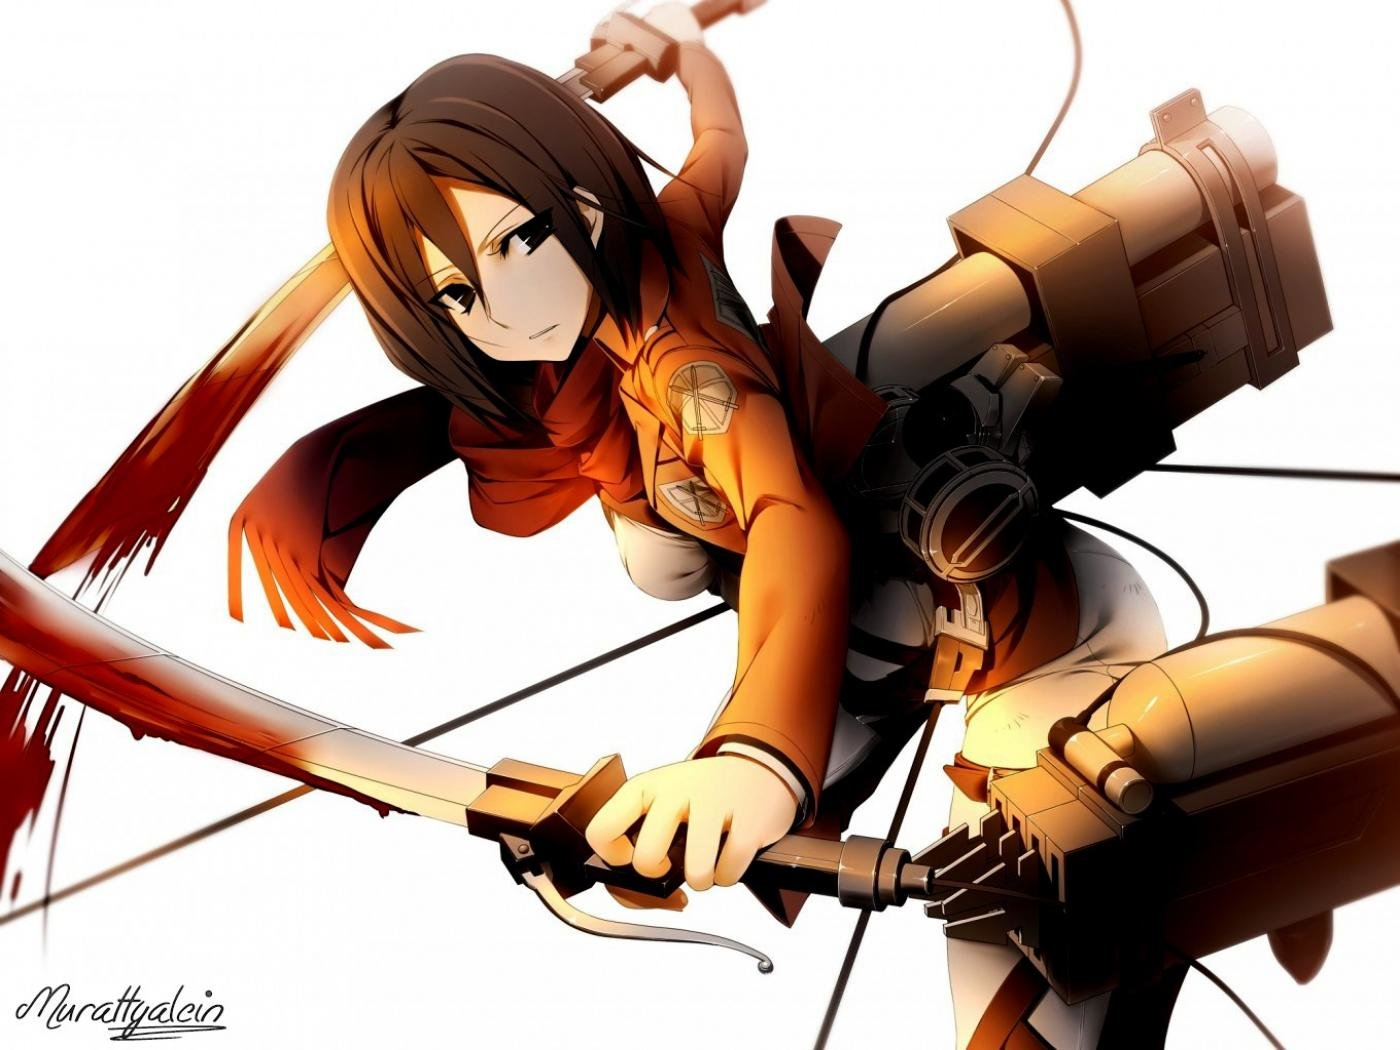 Mikasa Ackerman Wallpapers Hd For Desktop Backgrounds